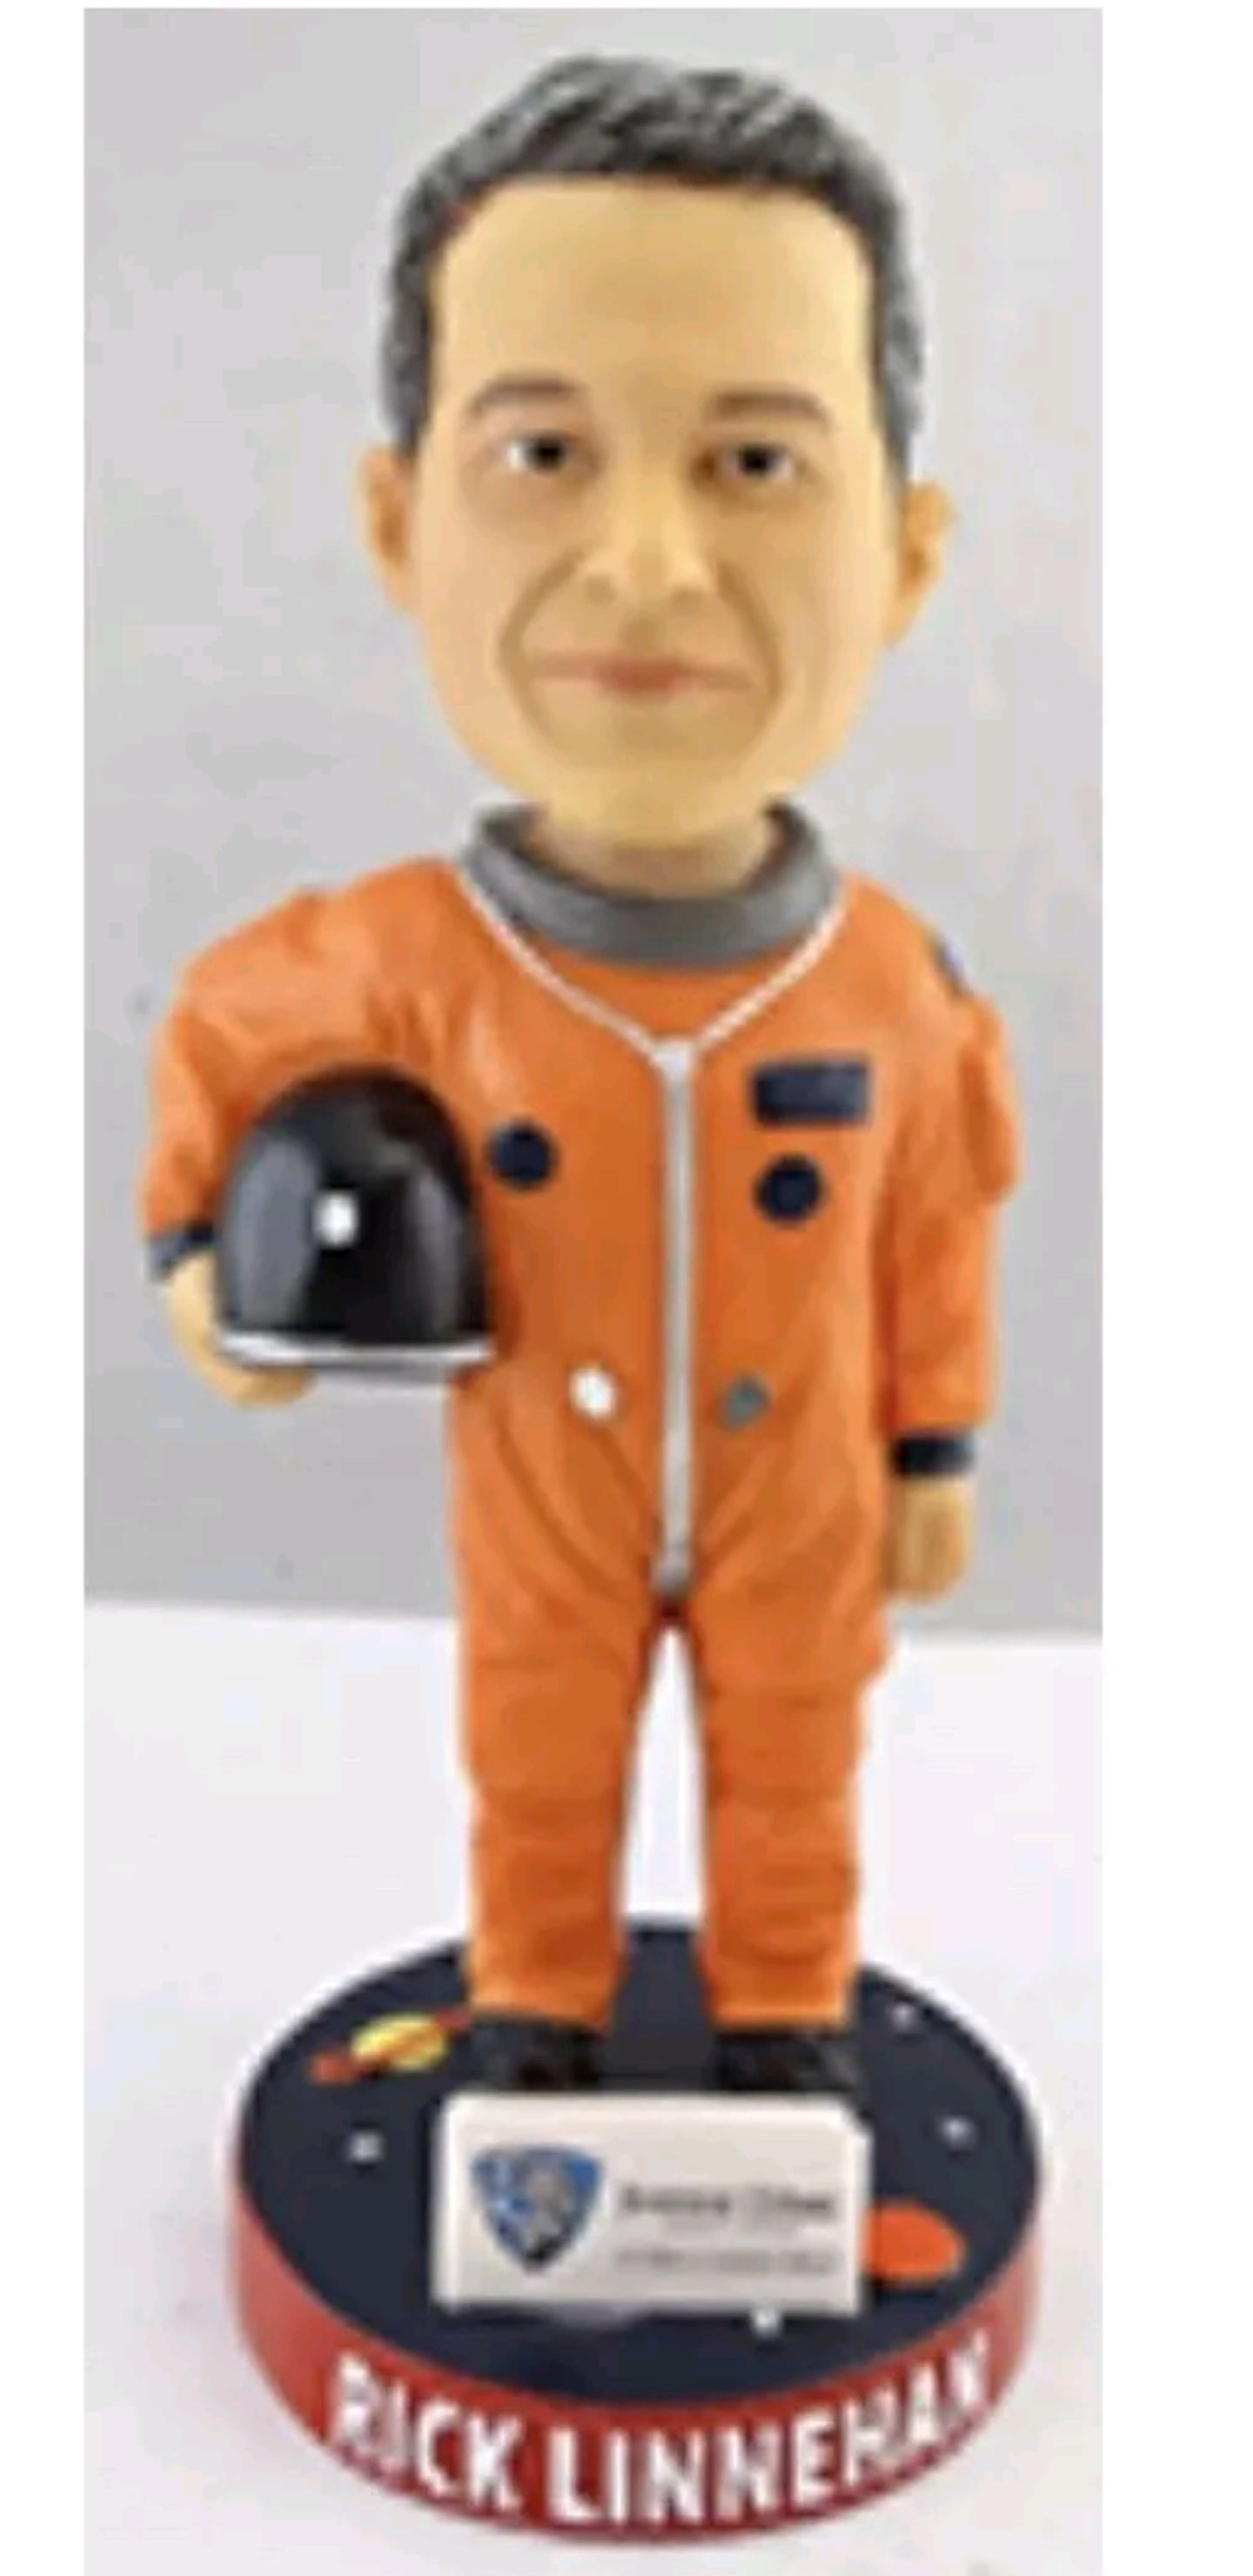 Rick Linnehan- Auto Bobblehead front image (front cover)